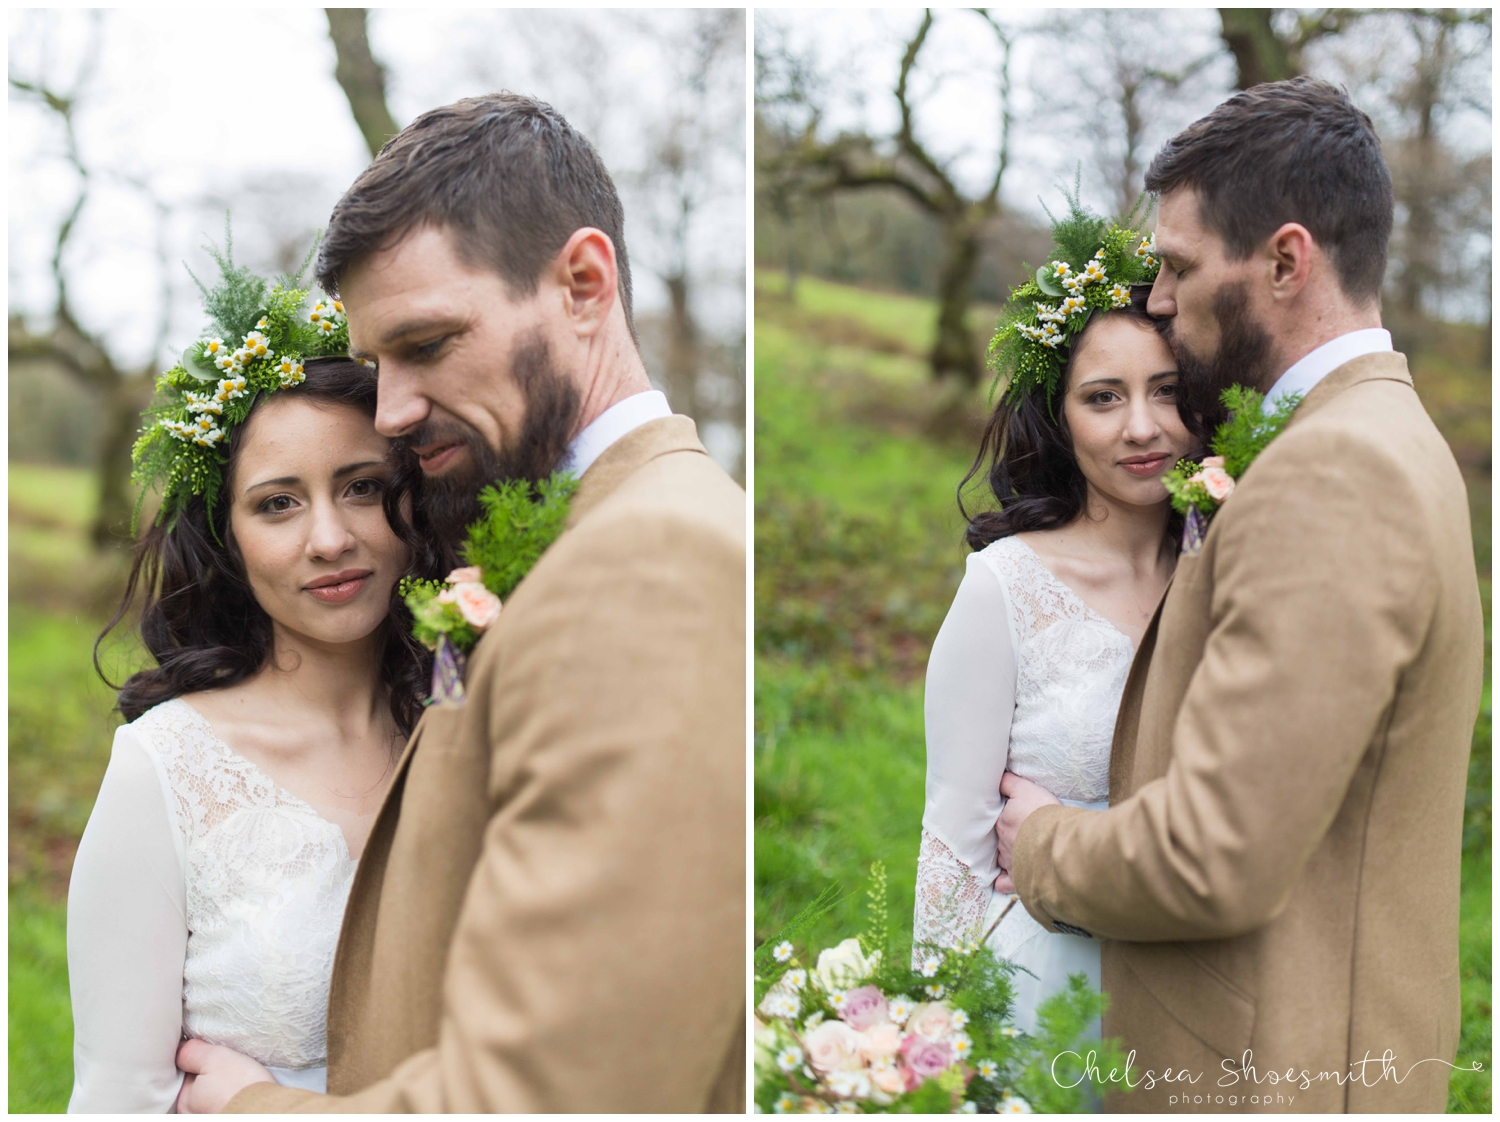 (56 of 183) Deya & Craig Bridal Styled Shoot Teggsnose country park macclesfield cheshire wedding photographer chelsea shoesmith photography_